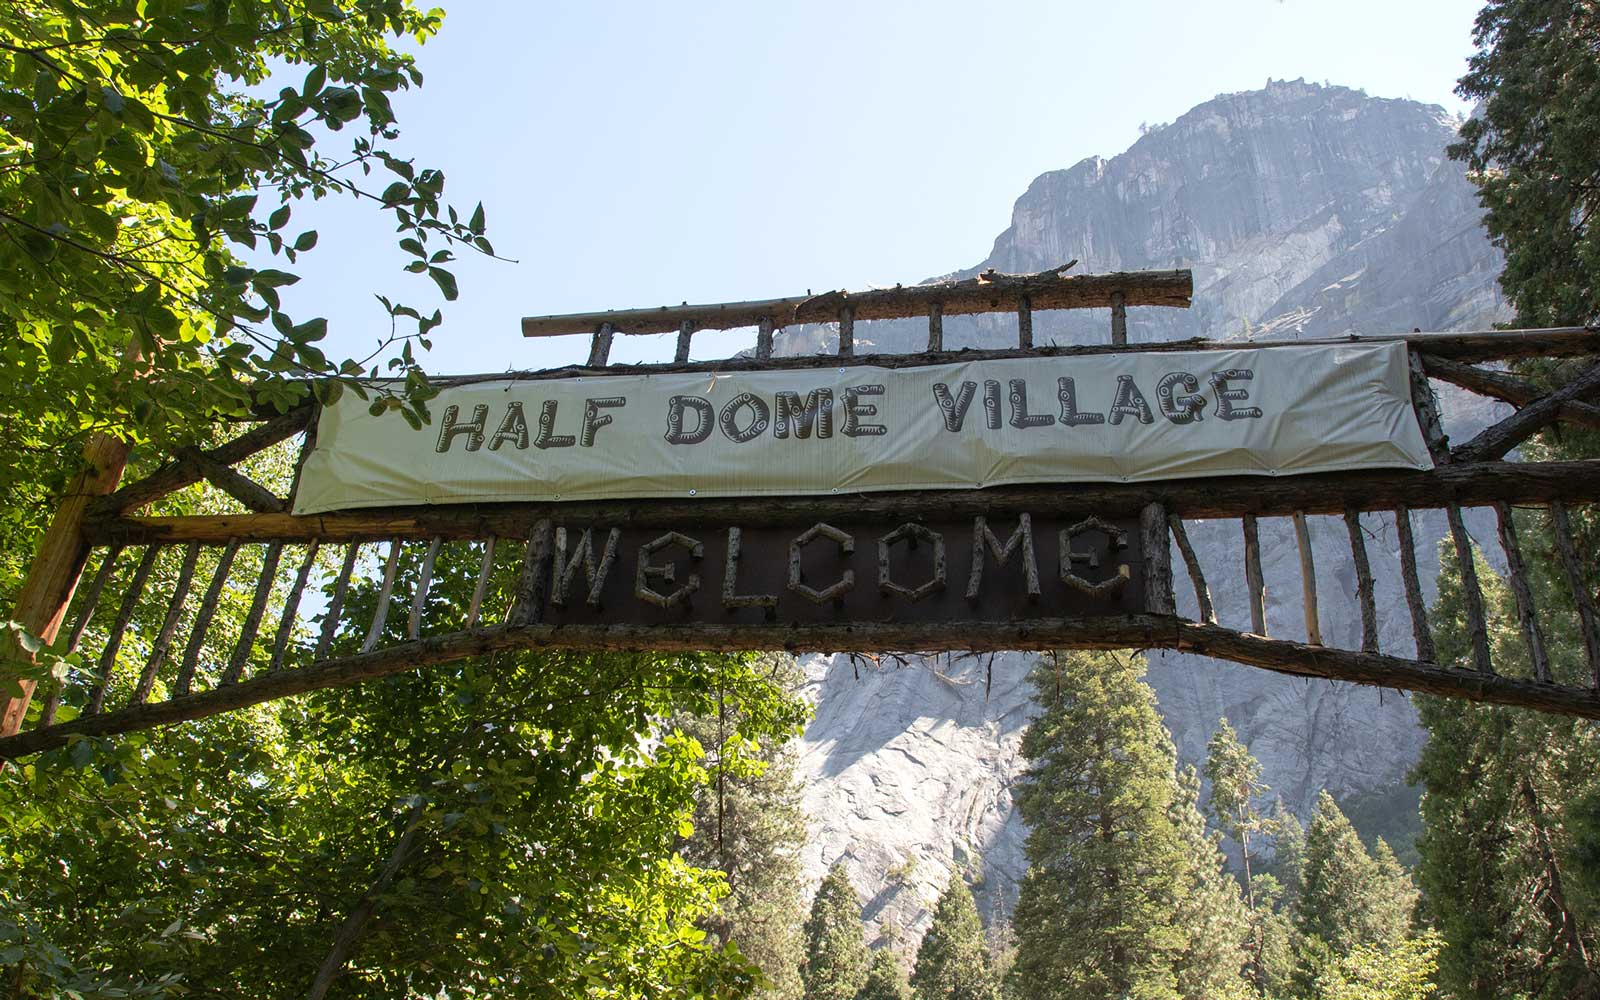 Yosemite National Park, Half Dome Village